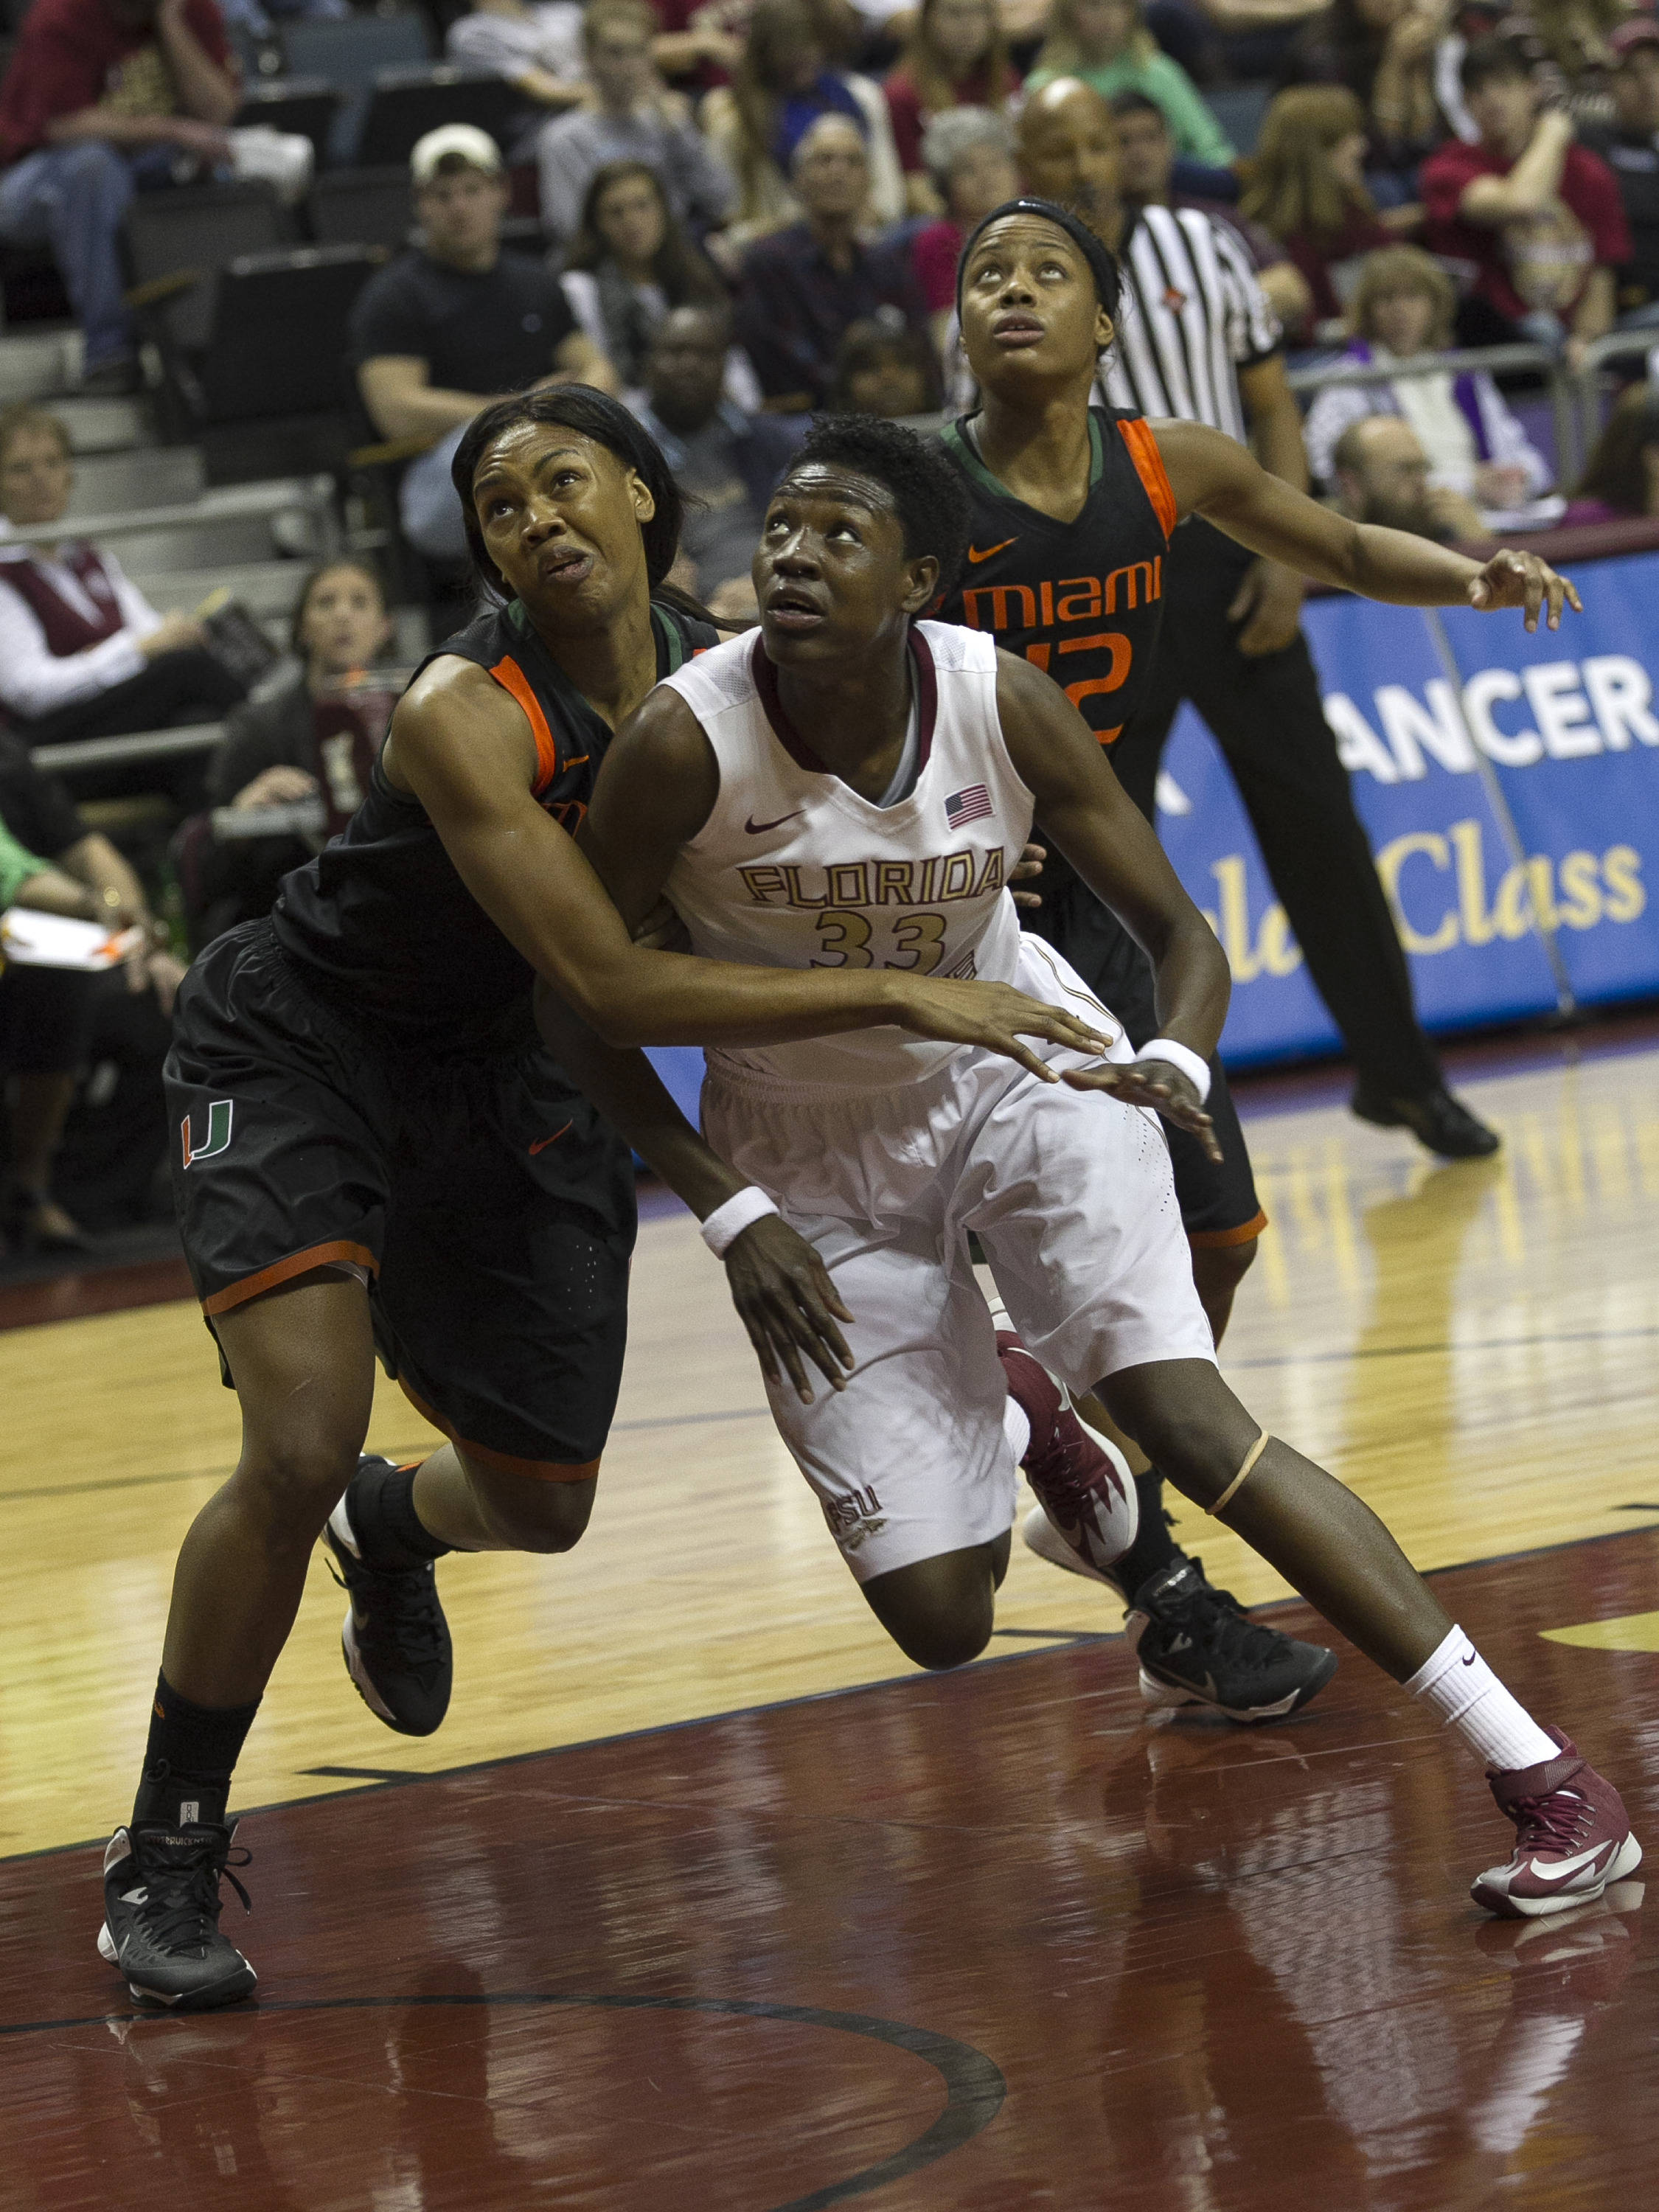 Natasha Howard (33) battling for position, FSU vs Miami, 2-16-14, (Photo's by Steve Musco)